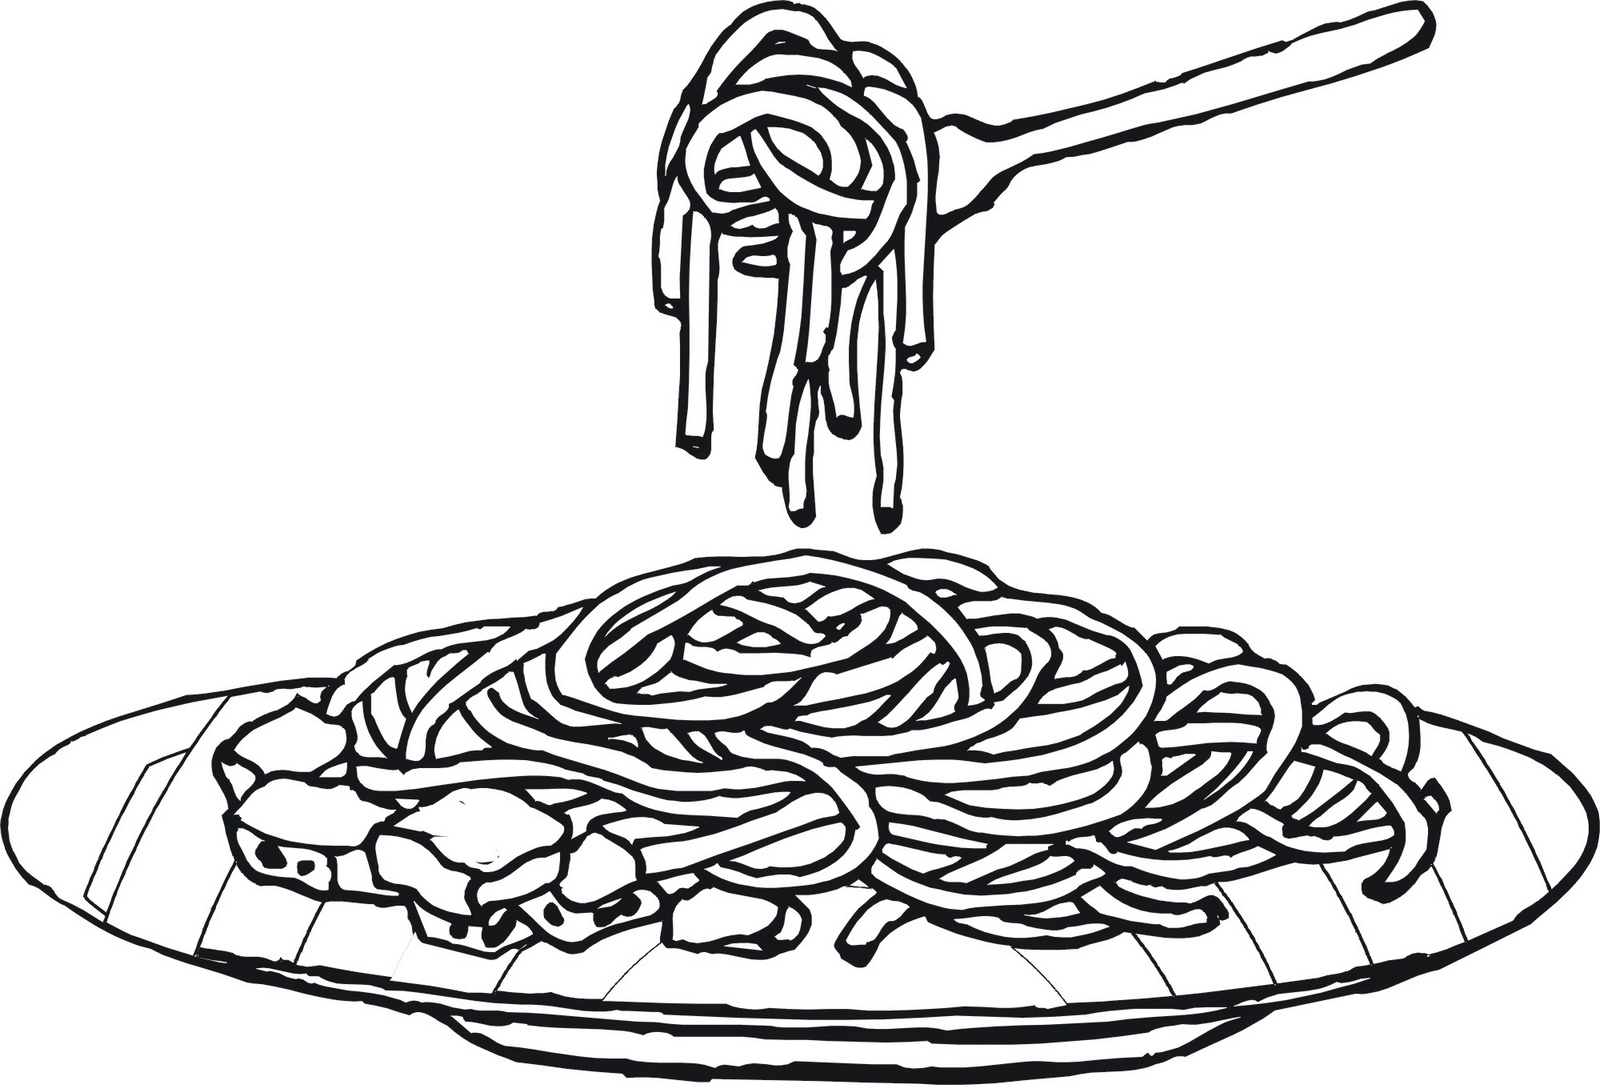 a plate of spaghetti coloring sheet